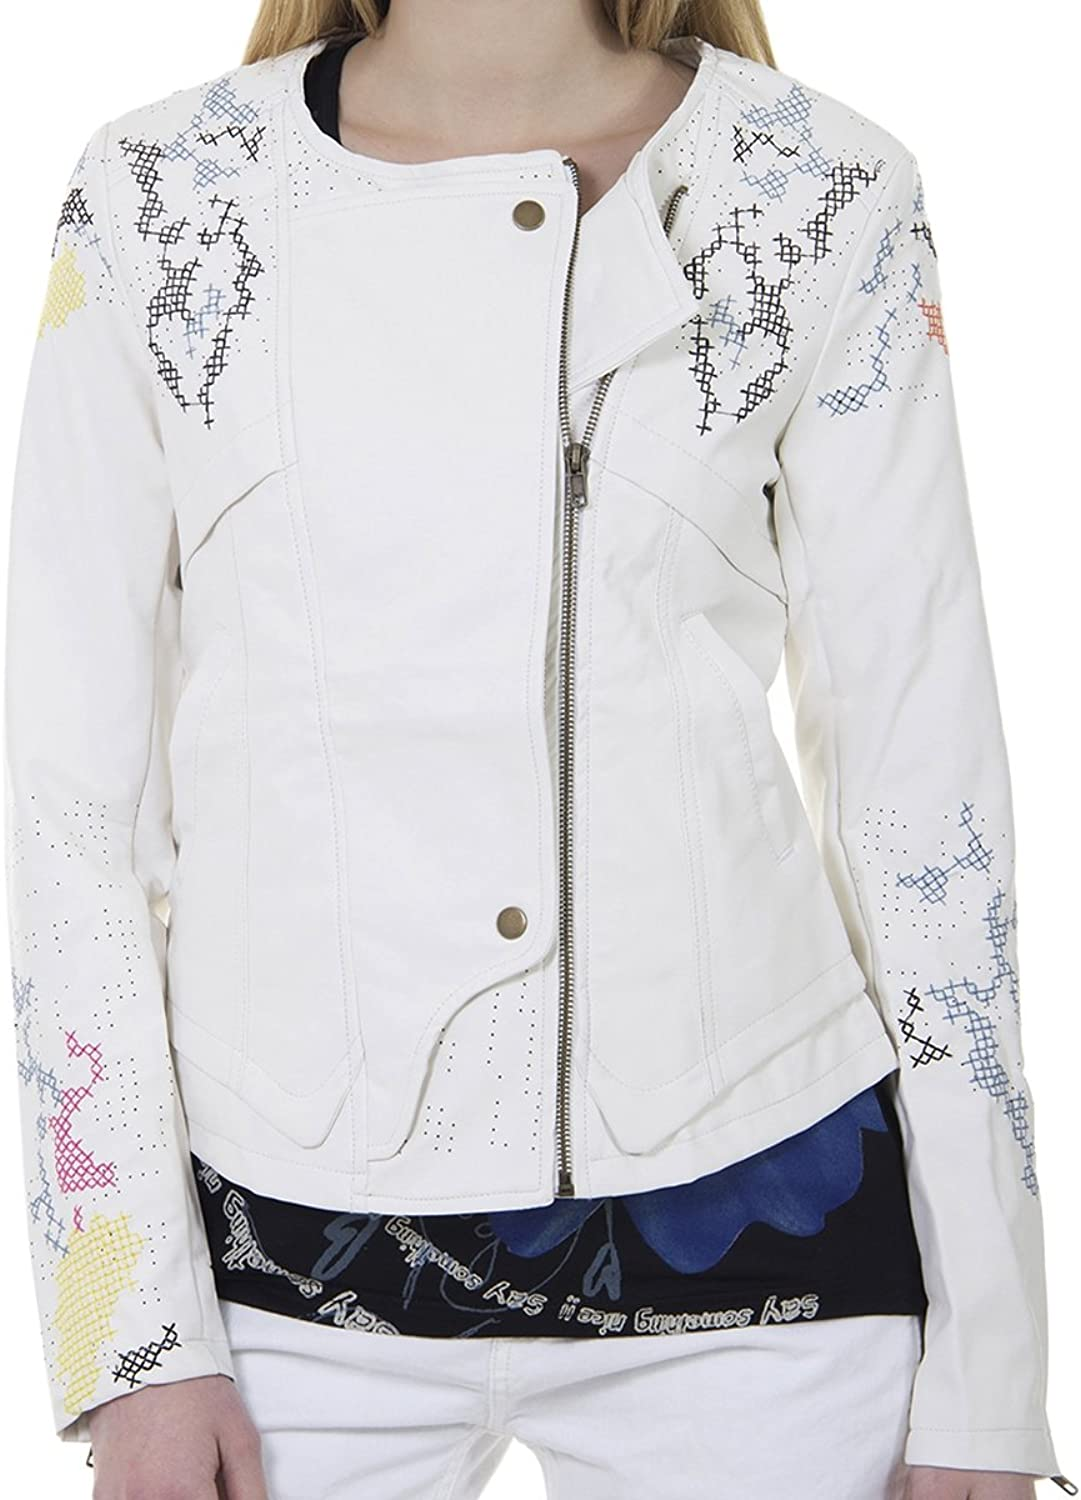 Desigual Womens' Pleather Jacket London, Sizes XSL